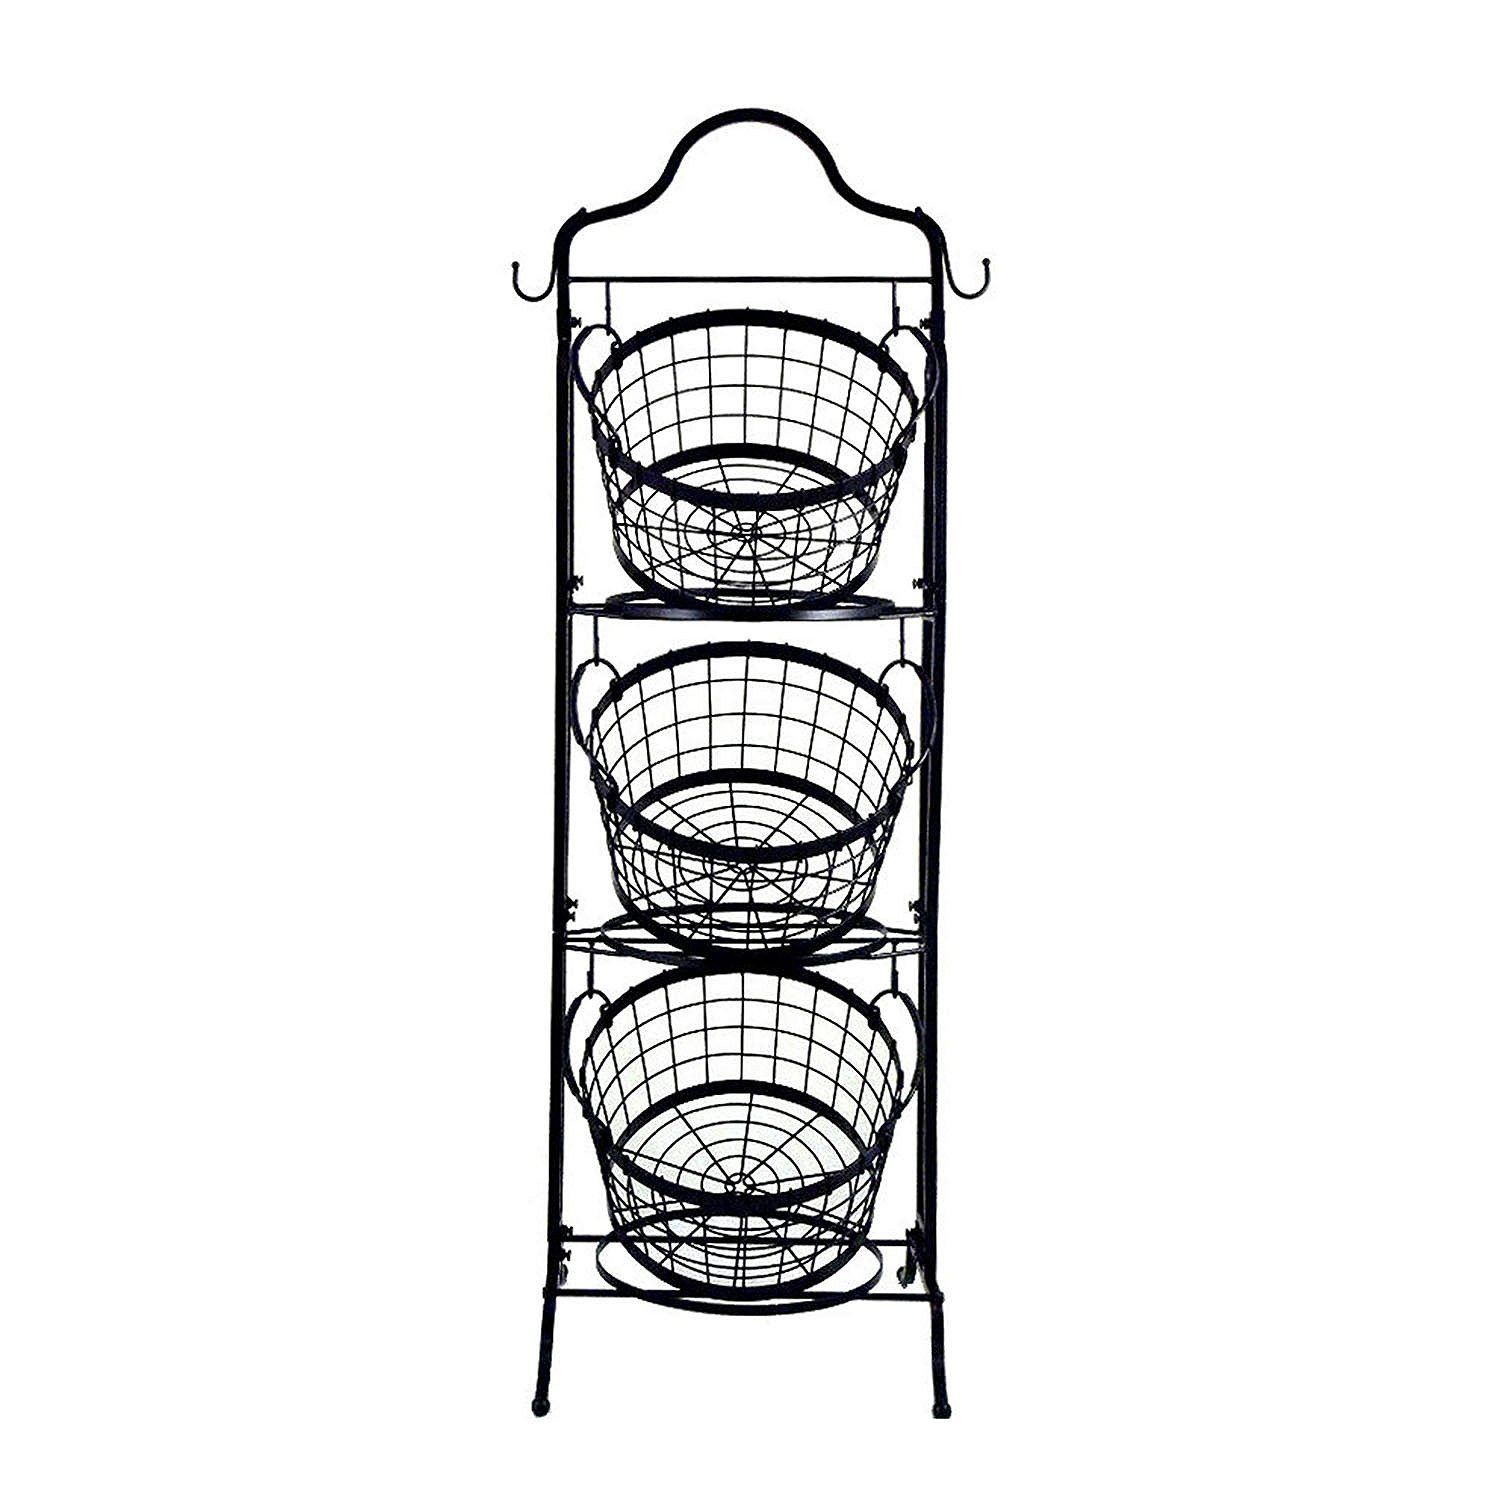 Amazon Com 3 Tier Floor Stand Bushel Basket Cell Phones Accessories Bushel Baskets Decorative Storage Baskets Tiered Basket Stand